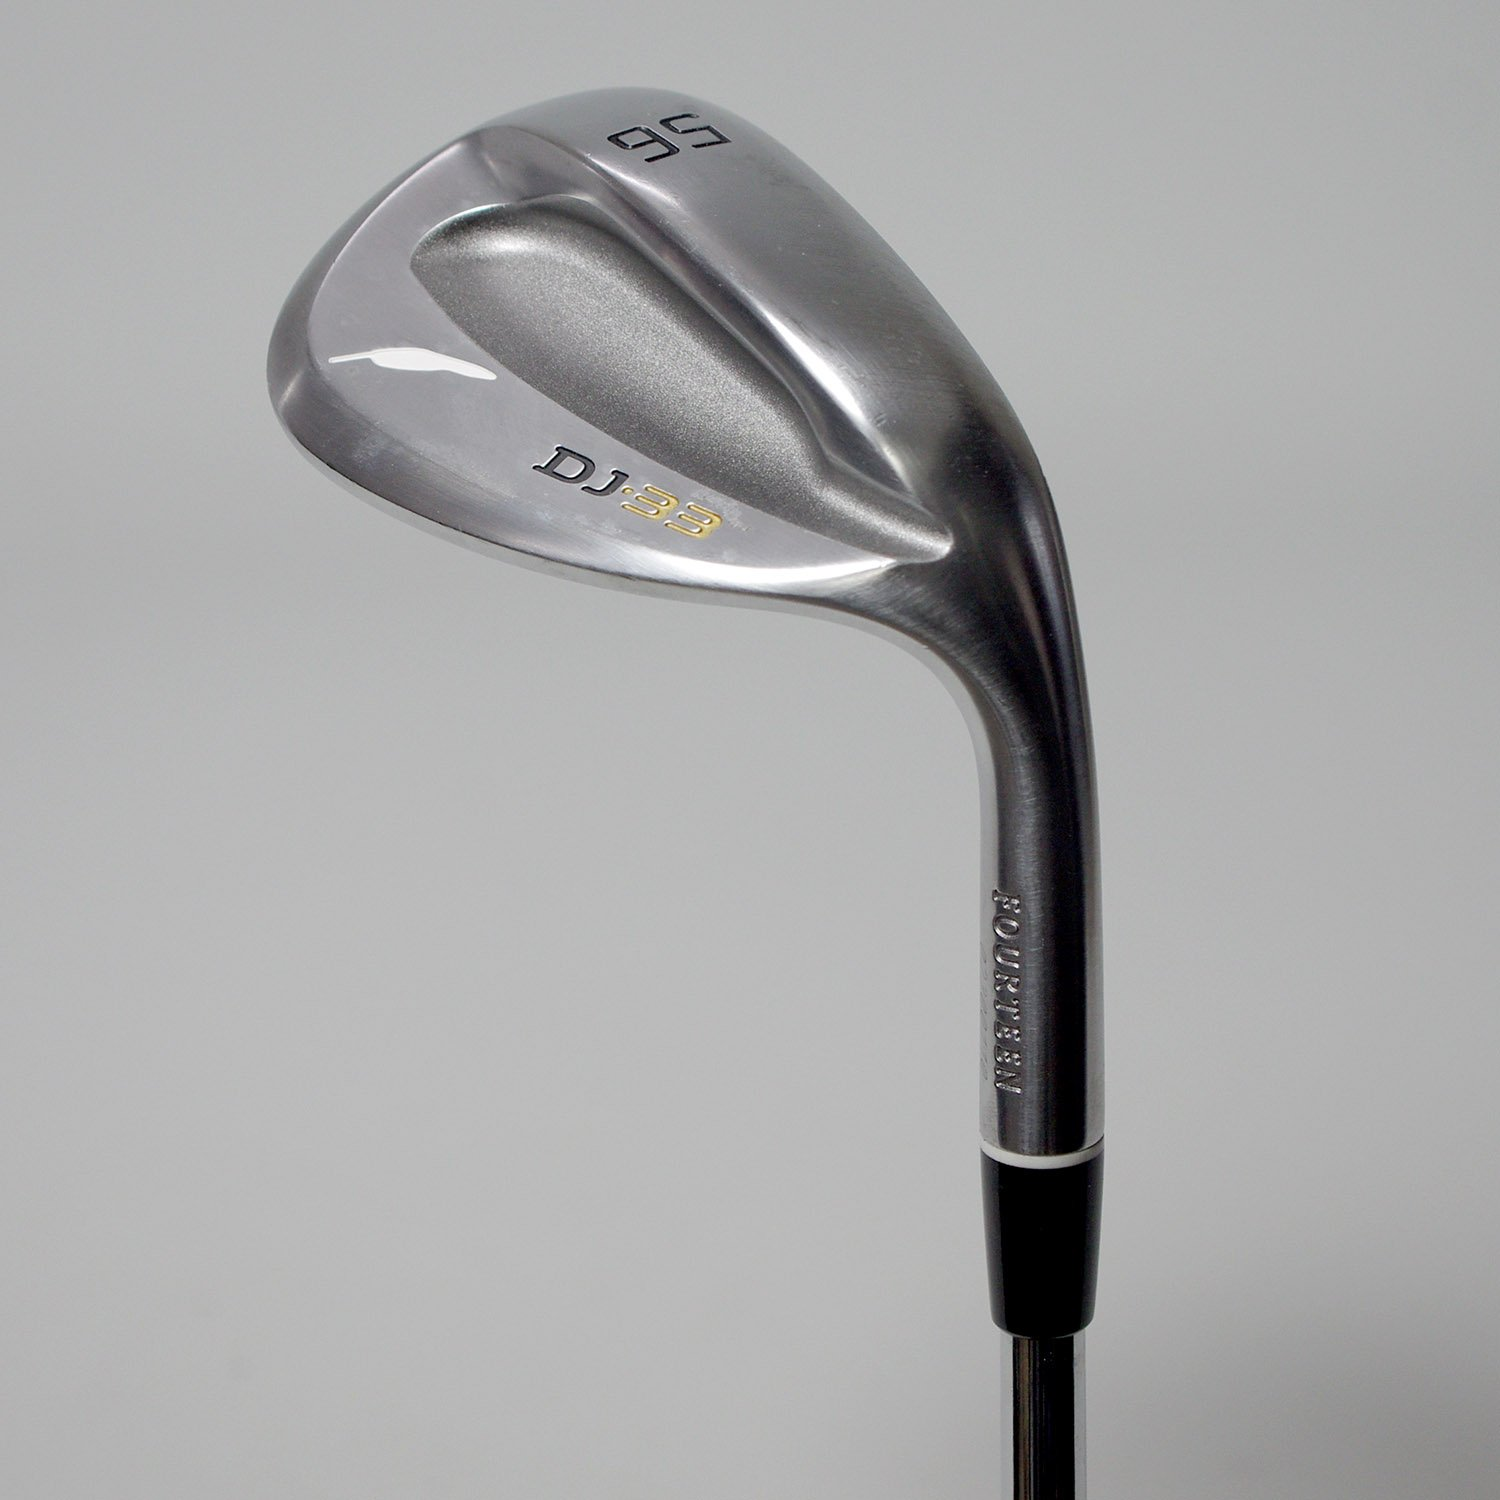 Gậy golf Wedge cũ DJ-33 56° Nspro 950HT PCW-FT24 FOURTEEN